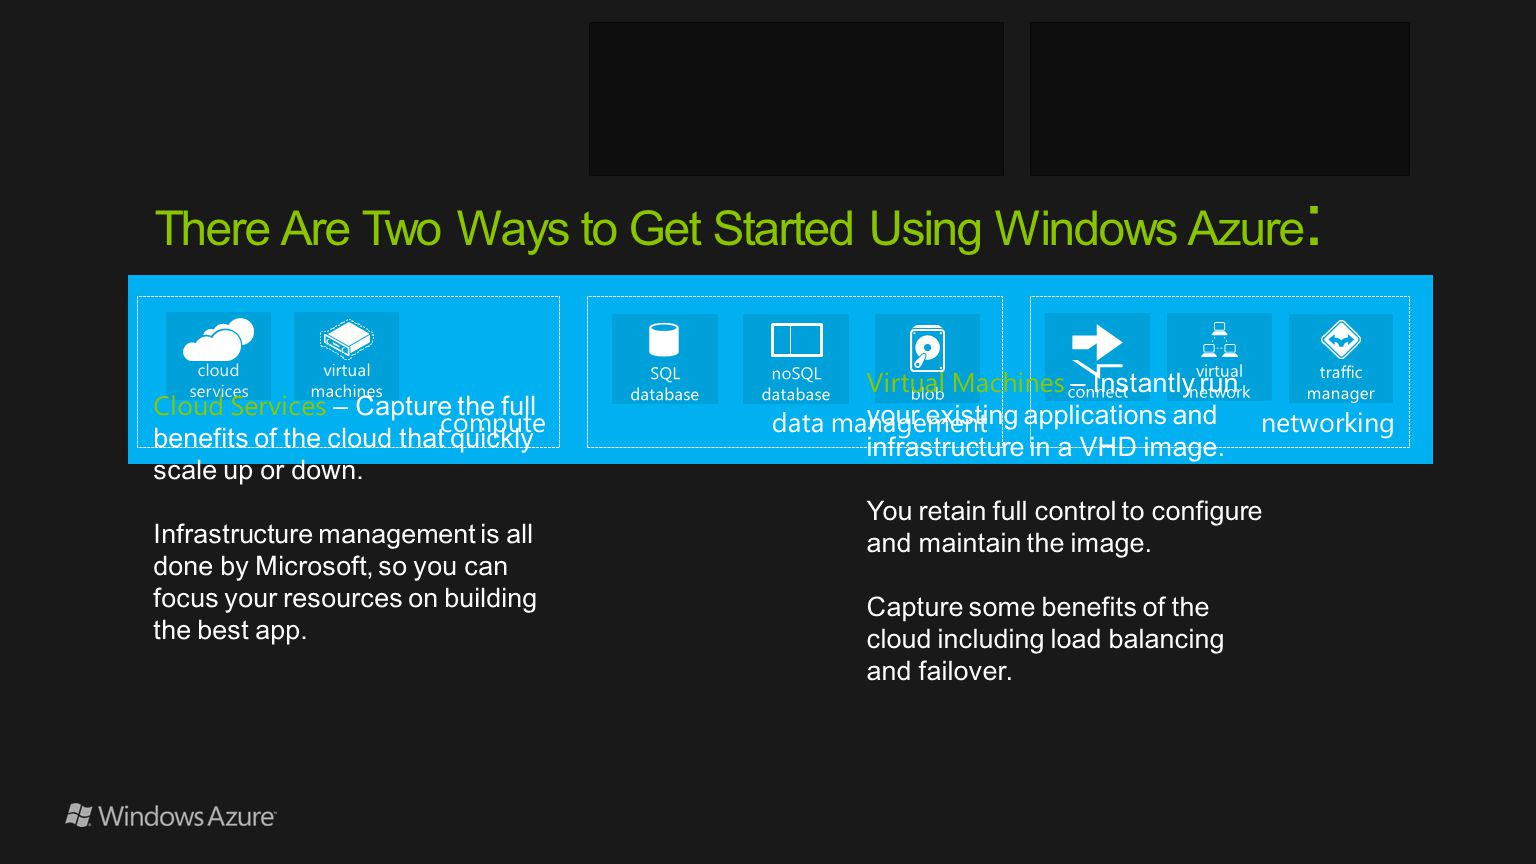 There Are Two Ways to Get Started Using Windows Azure: